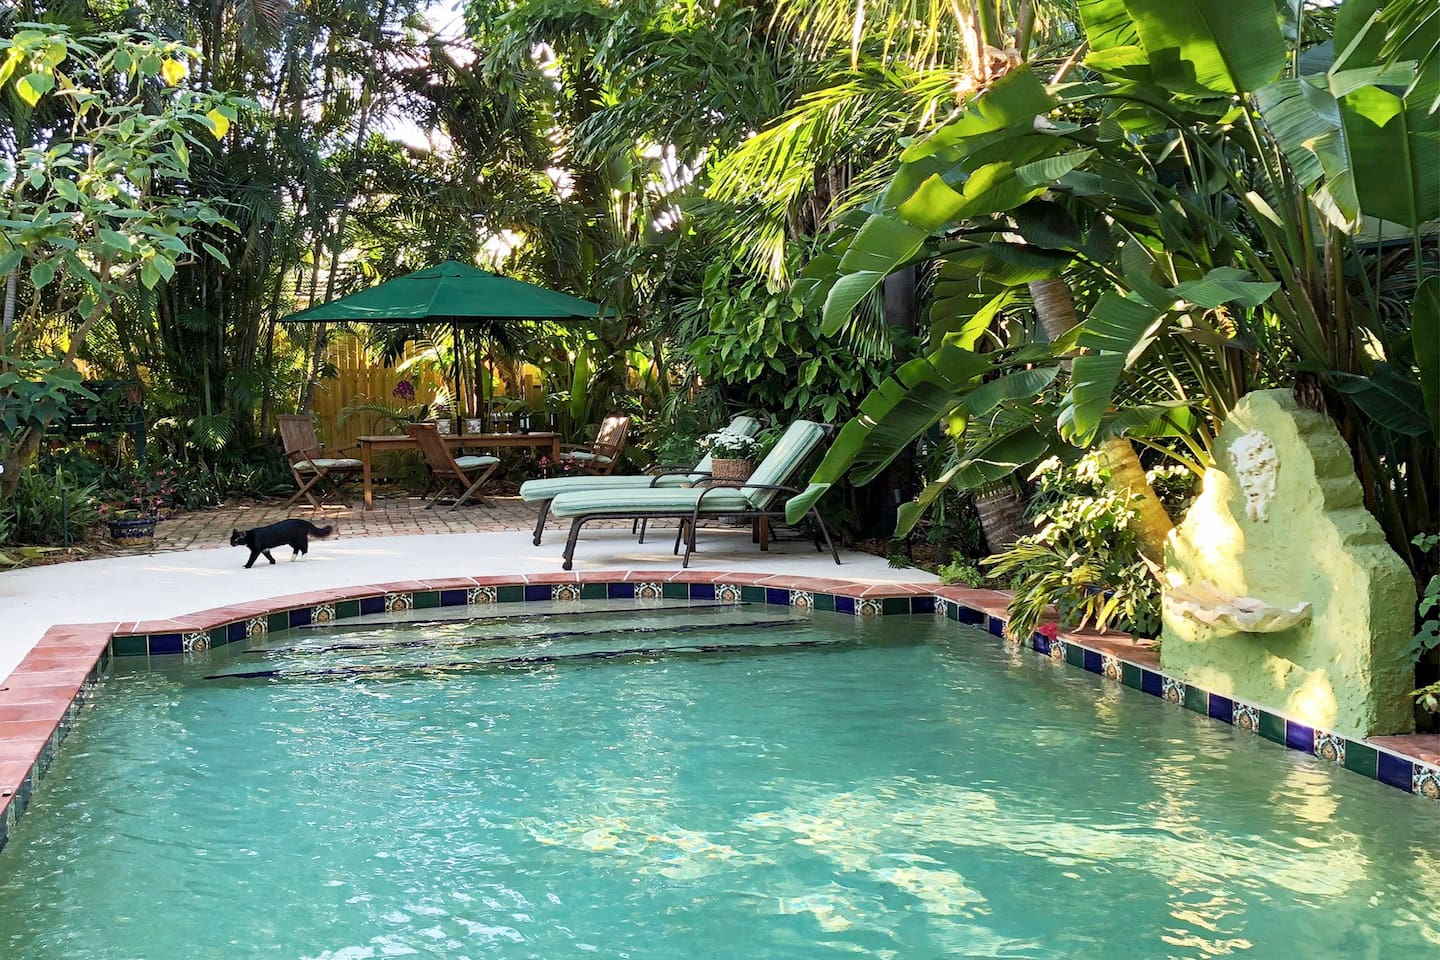 Set in a palm-shaded jungle, historic Flamingo Bungalow is close to beaches and downtown West Palm Beach, but feels worlds away.